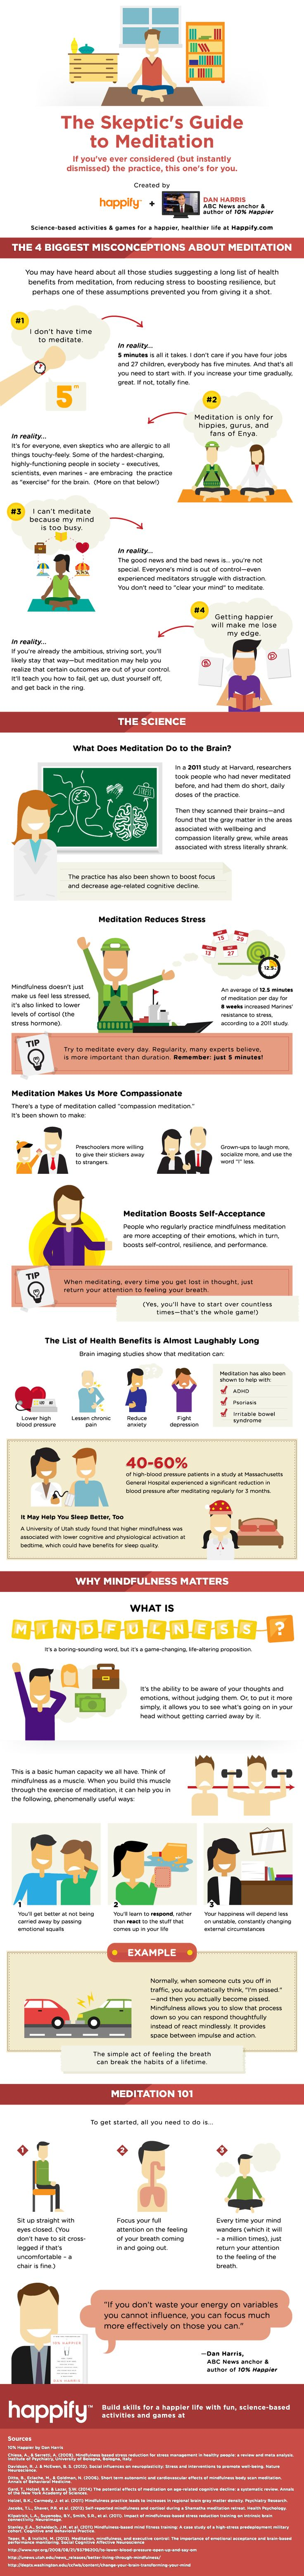 The Skeptic's Guide to Meditation #infographic